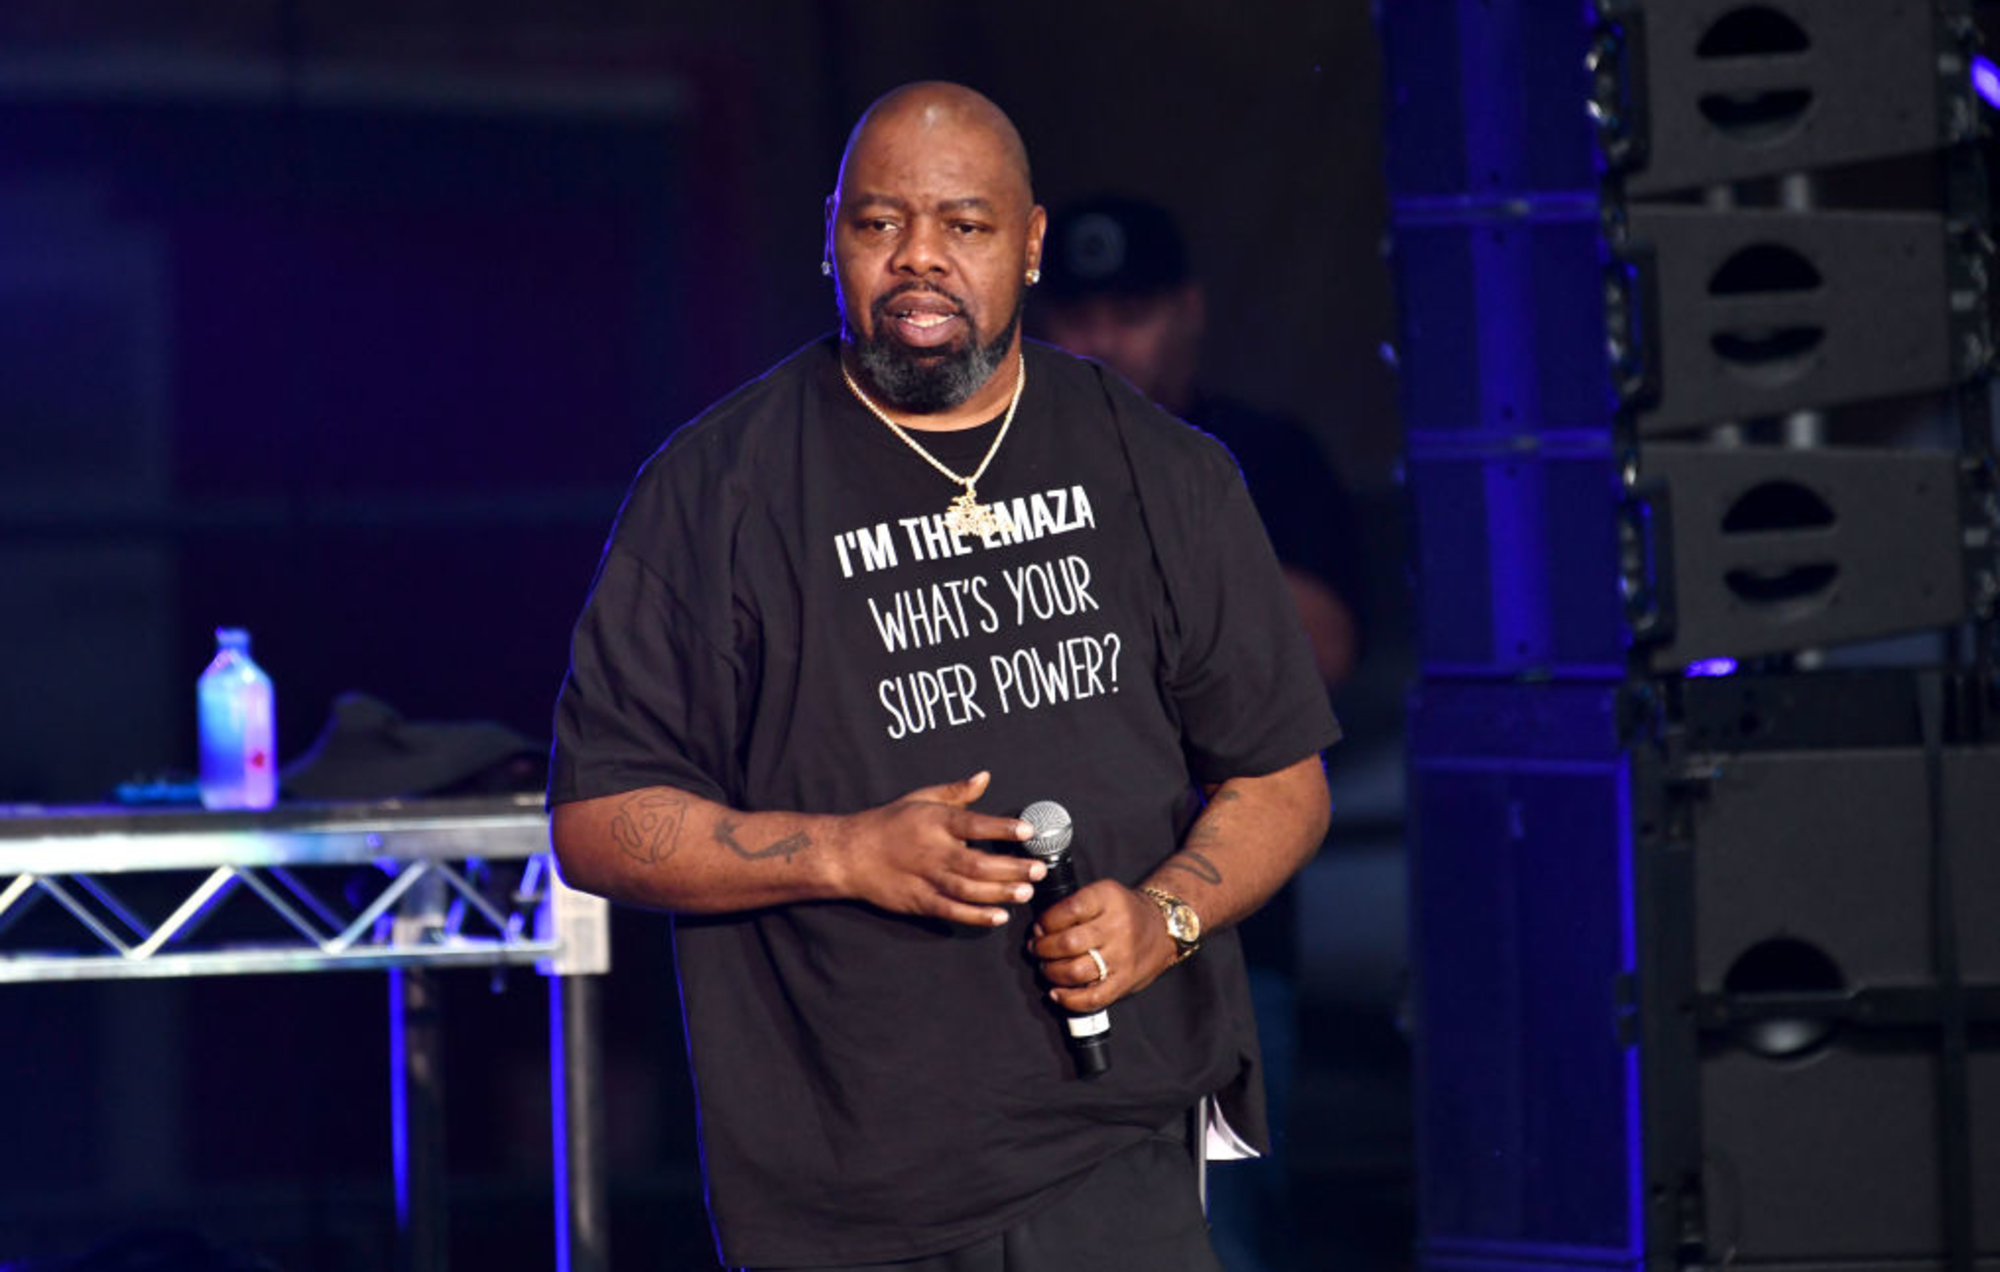 IRVINE, CALIFORNIA - JULY 13: Rapper Biz Markie performs onstage during Hammer's House Party at Five Point Amphitheater on July 13, 2019 in Irvine, California. (Photo by Scott Dudelson/Getty Images)